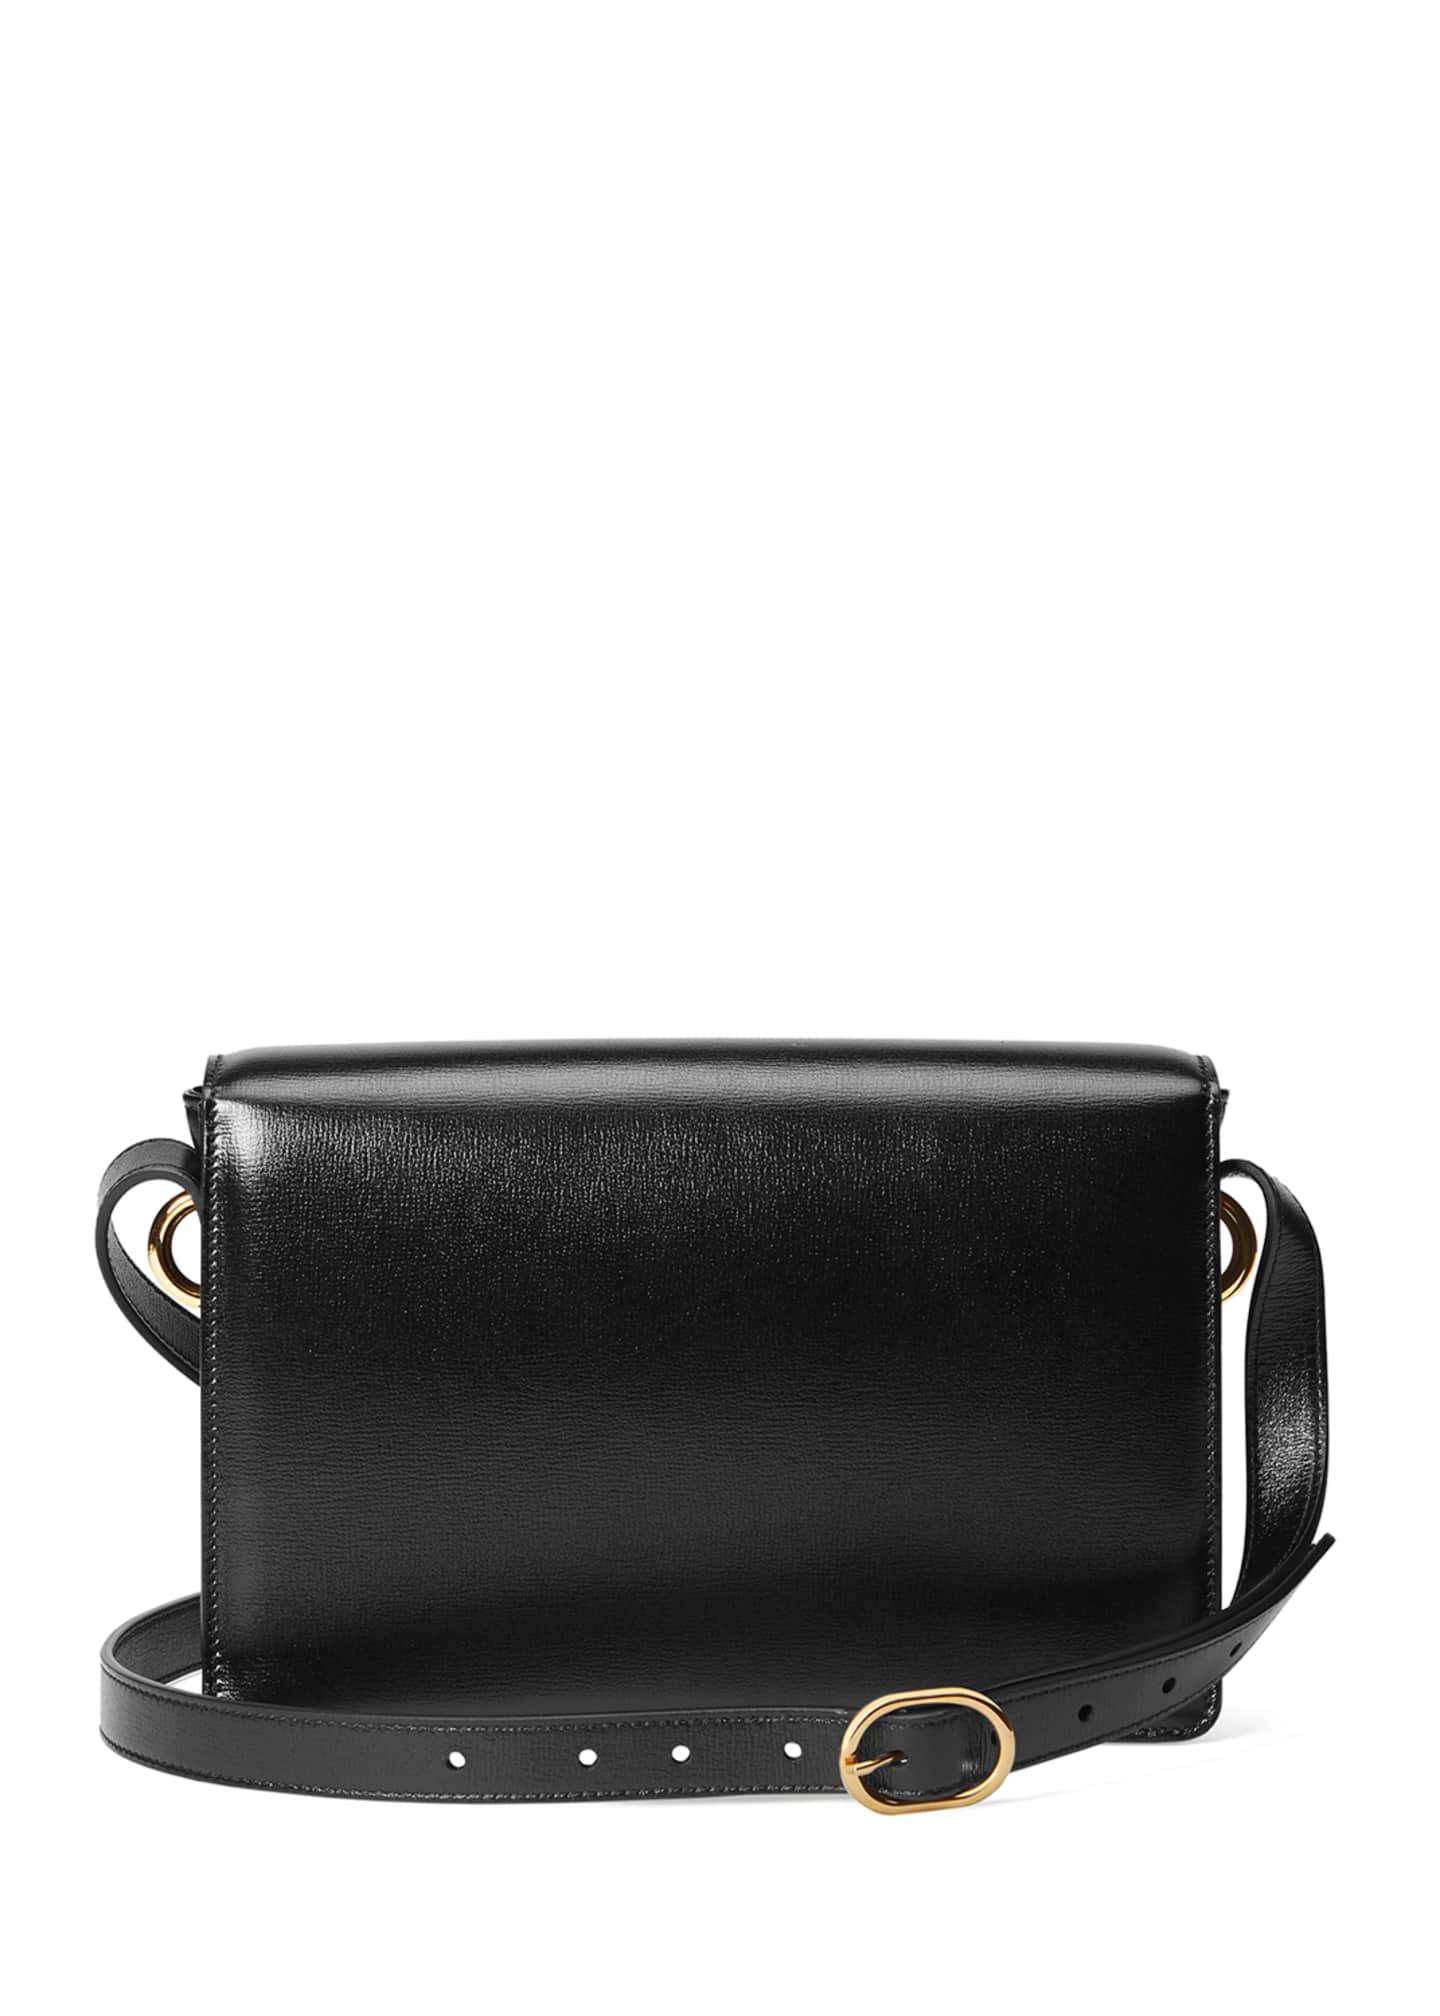 Image 4 of 4: GG Ring Small Leather Crossbody Bag